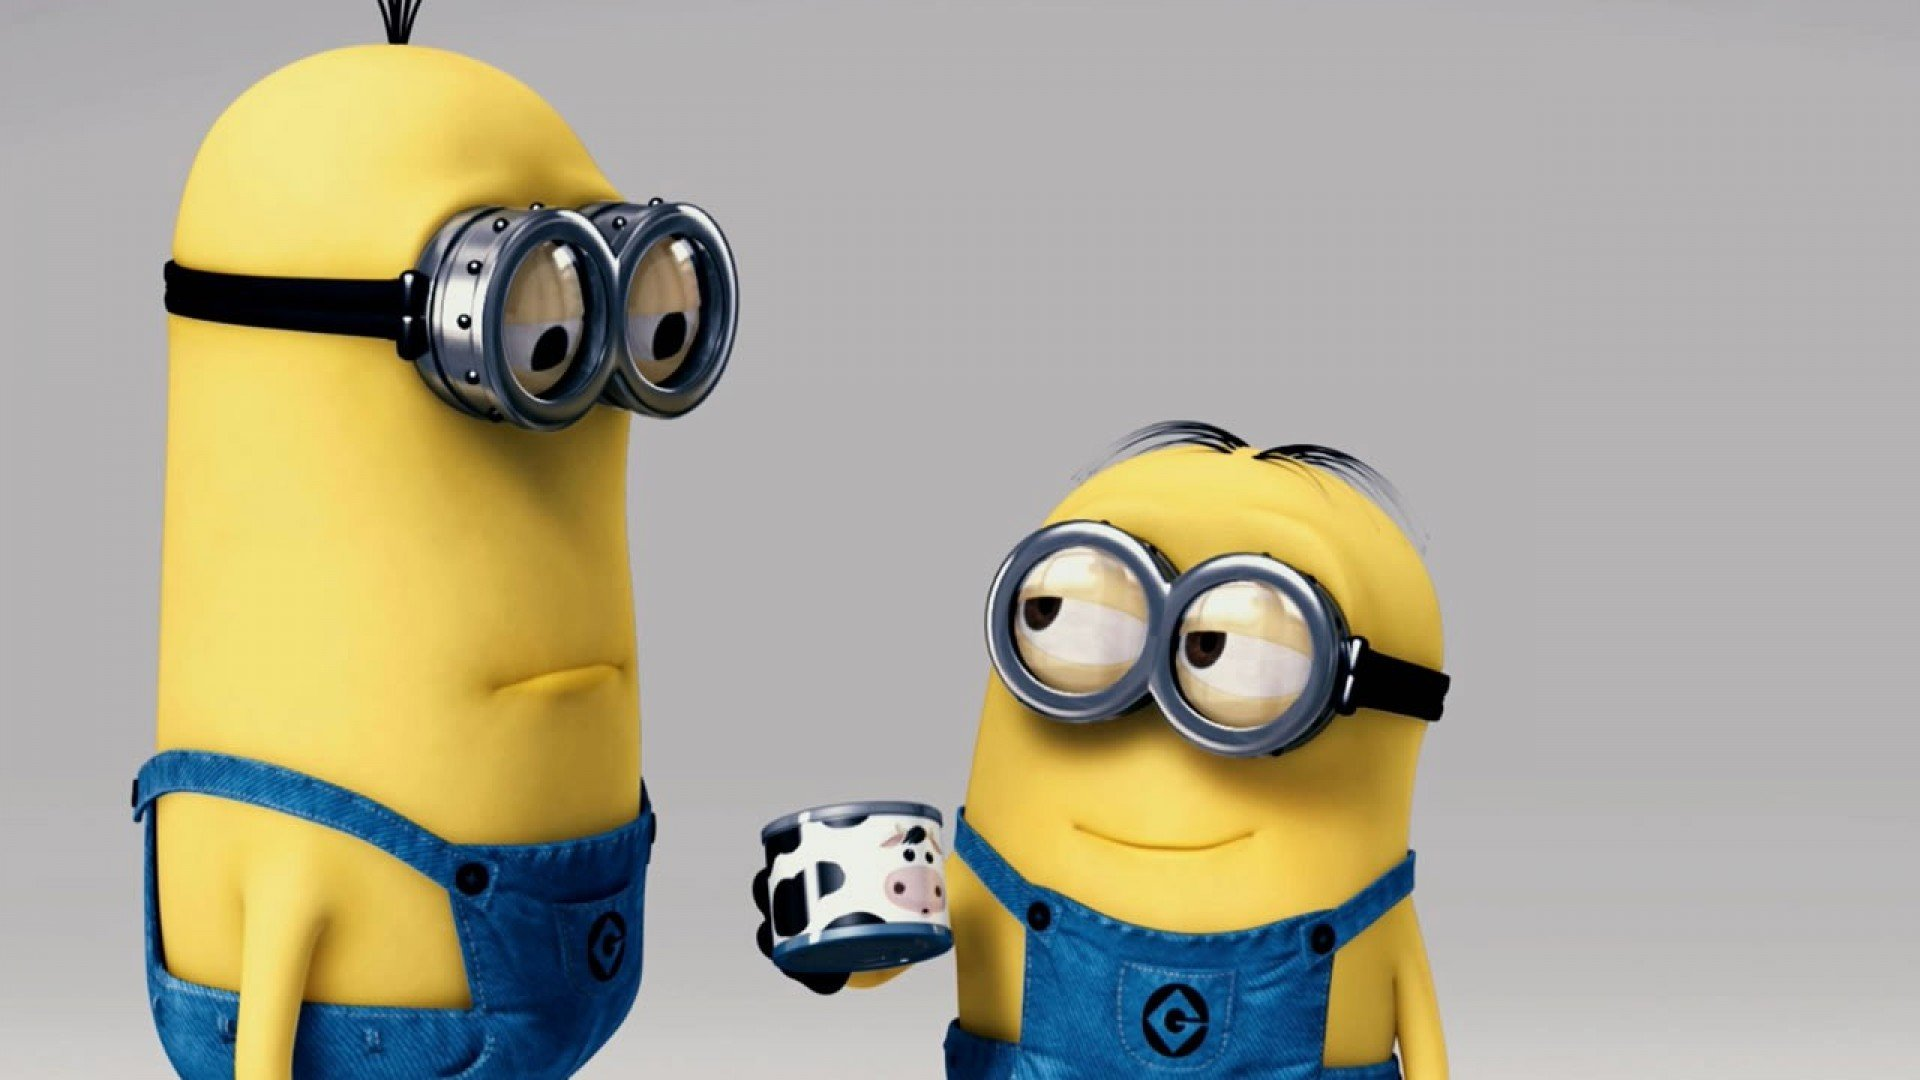 best-images-about-Minion-Mania-on-Pinterest-Funny-minion-wallpaper-wp3403155